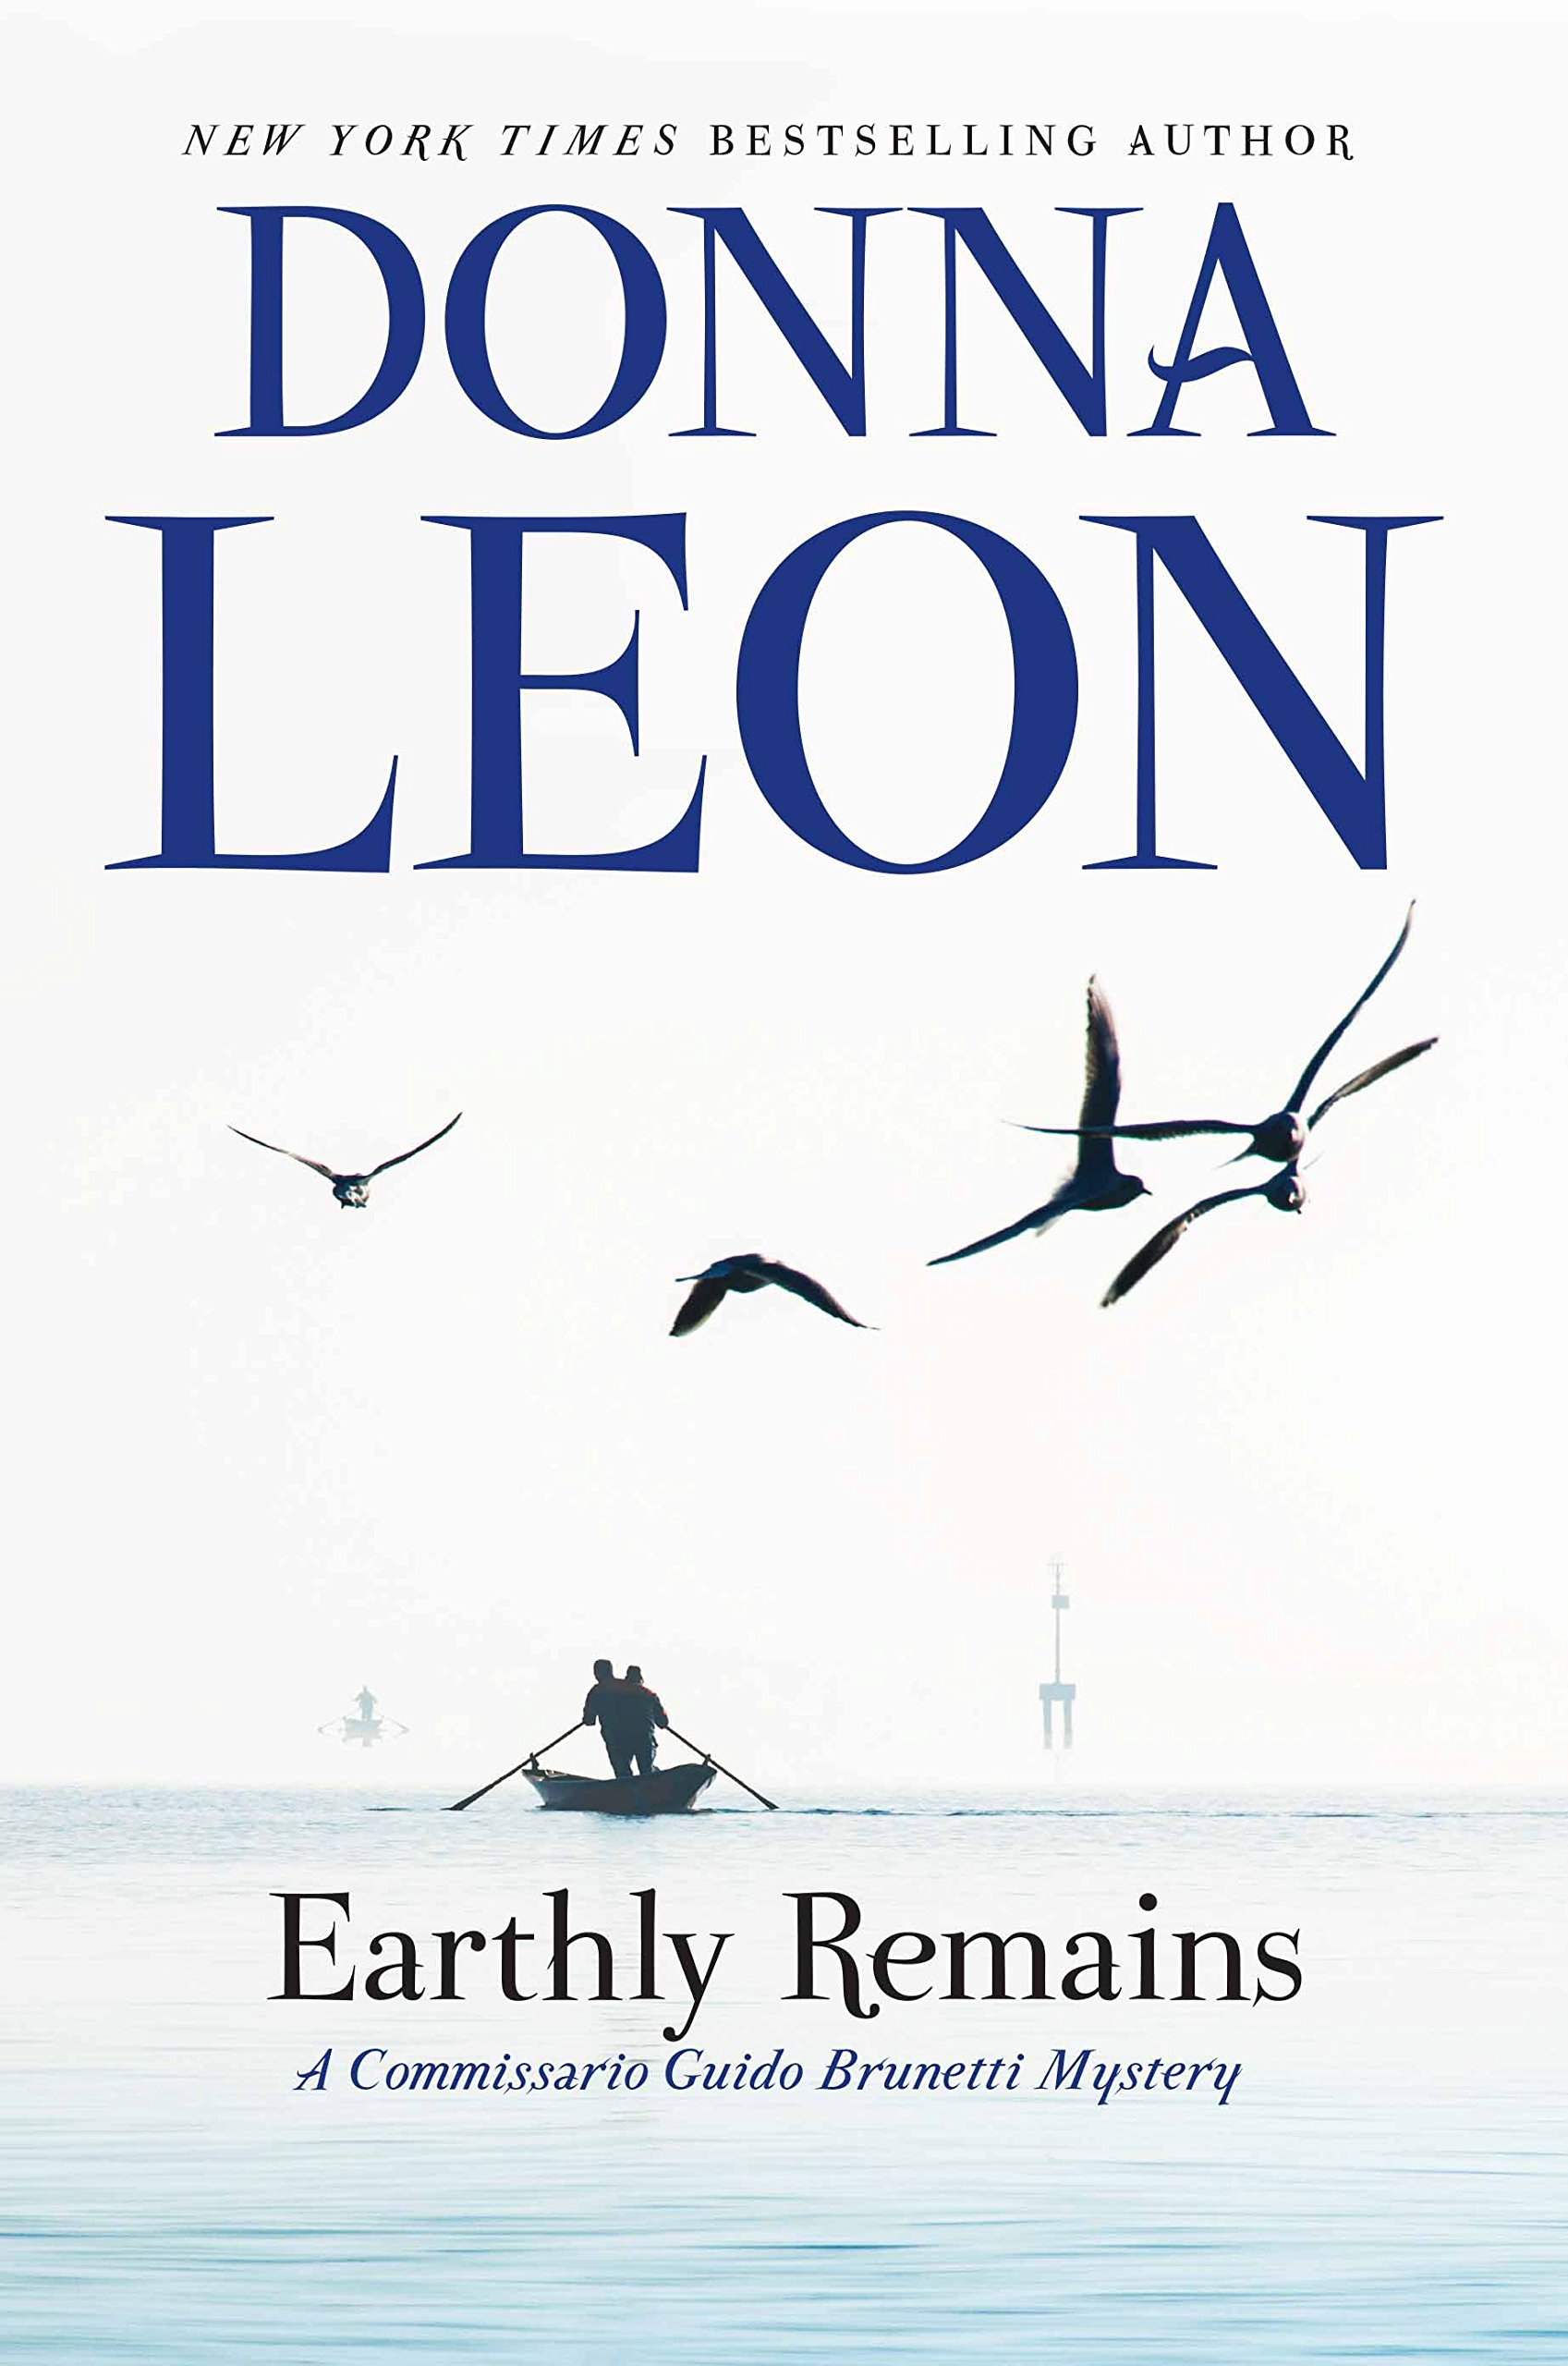 Earthly Remains: A Commissario Guido Brunetti Mystery ebook